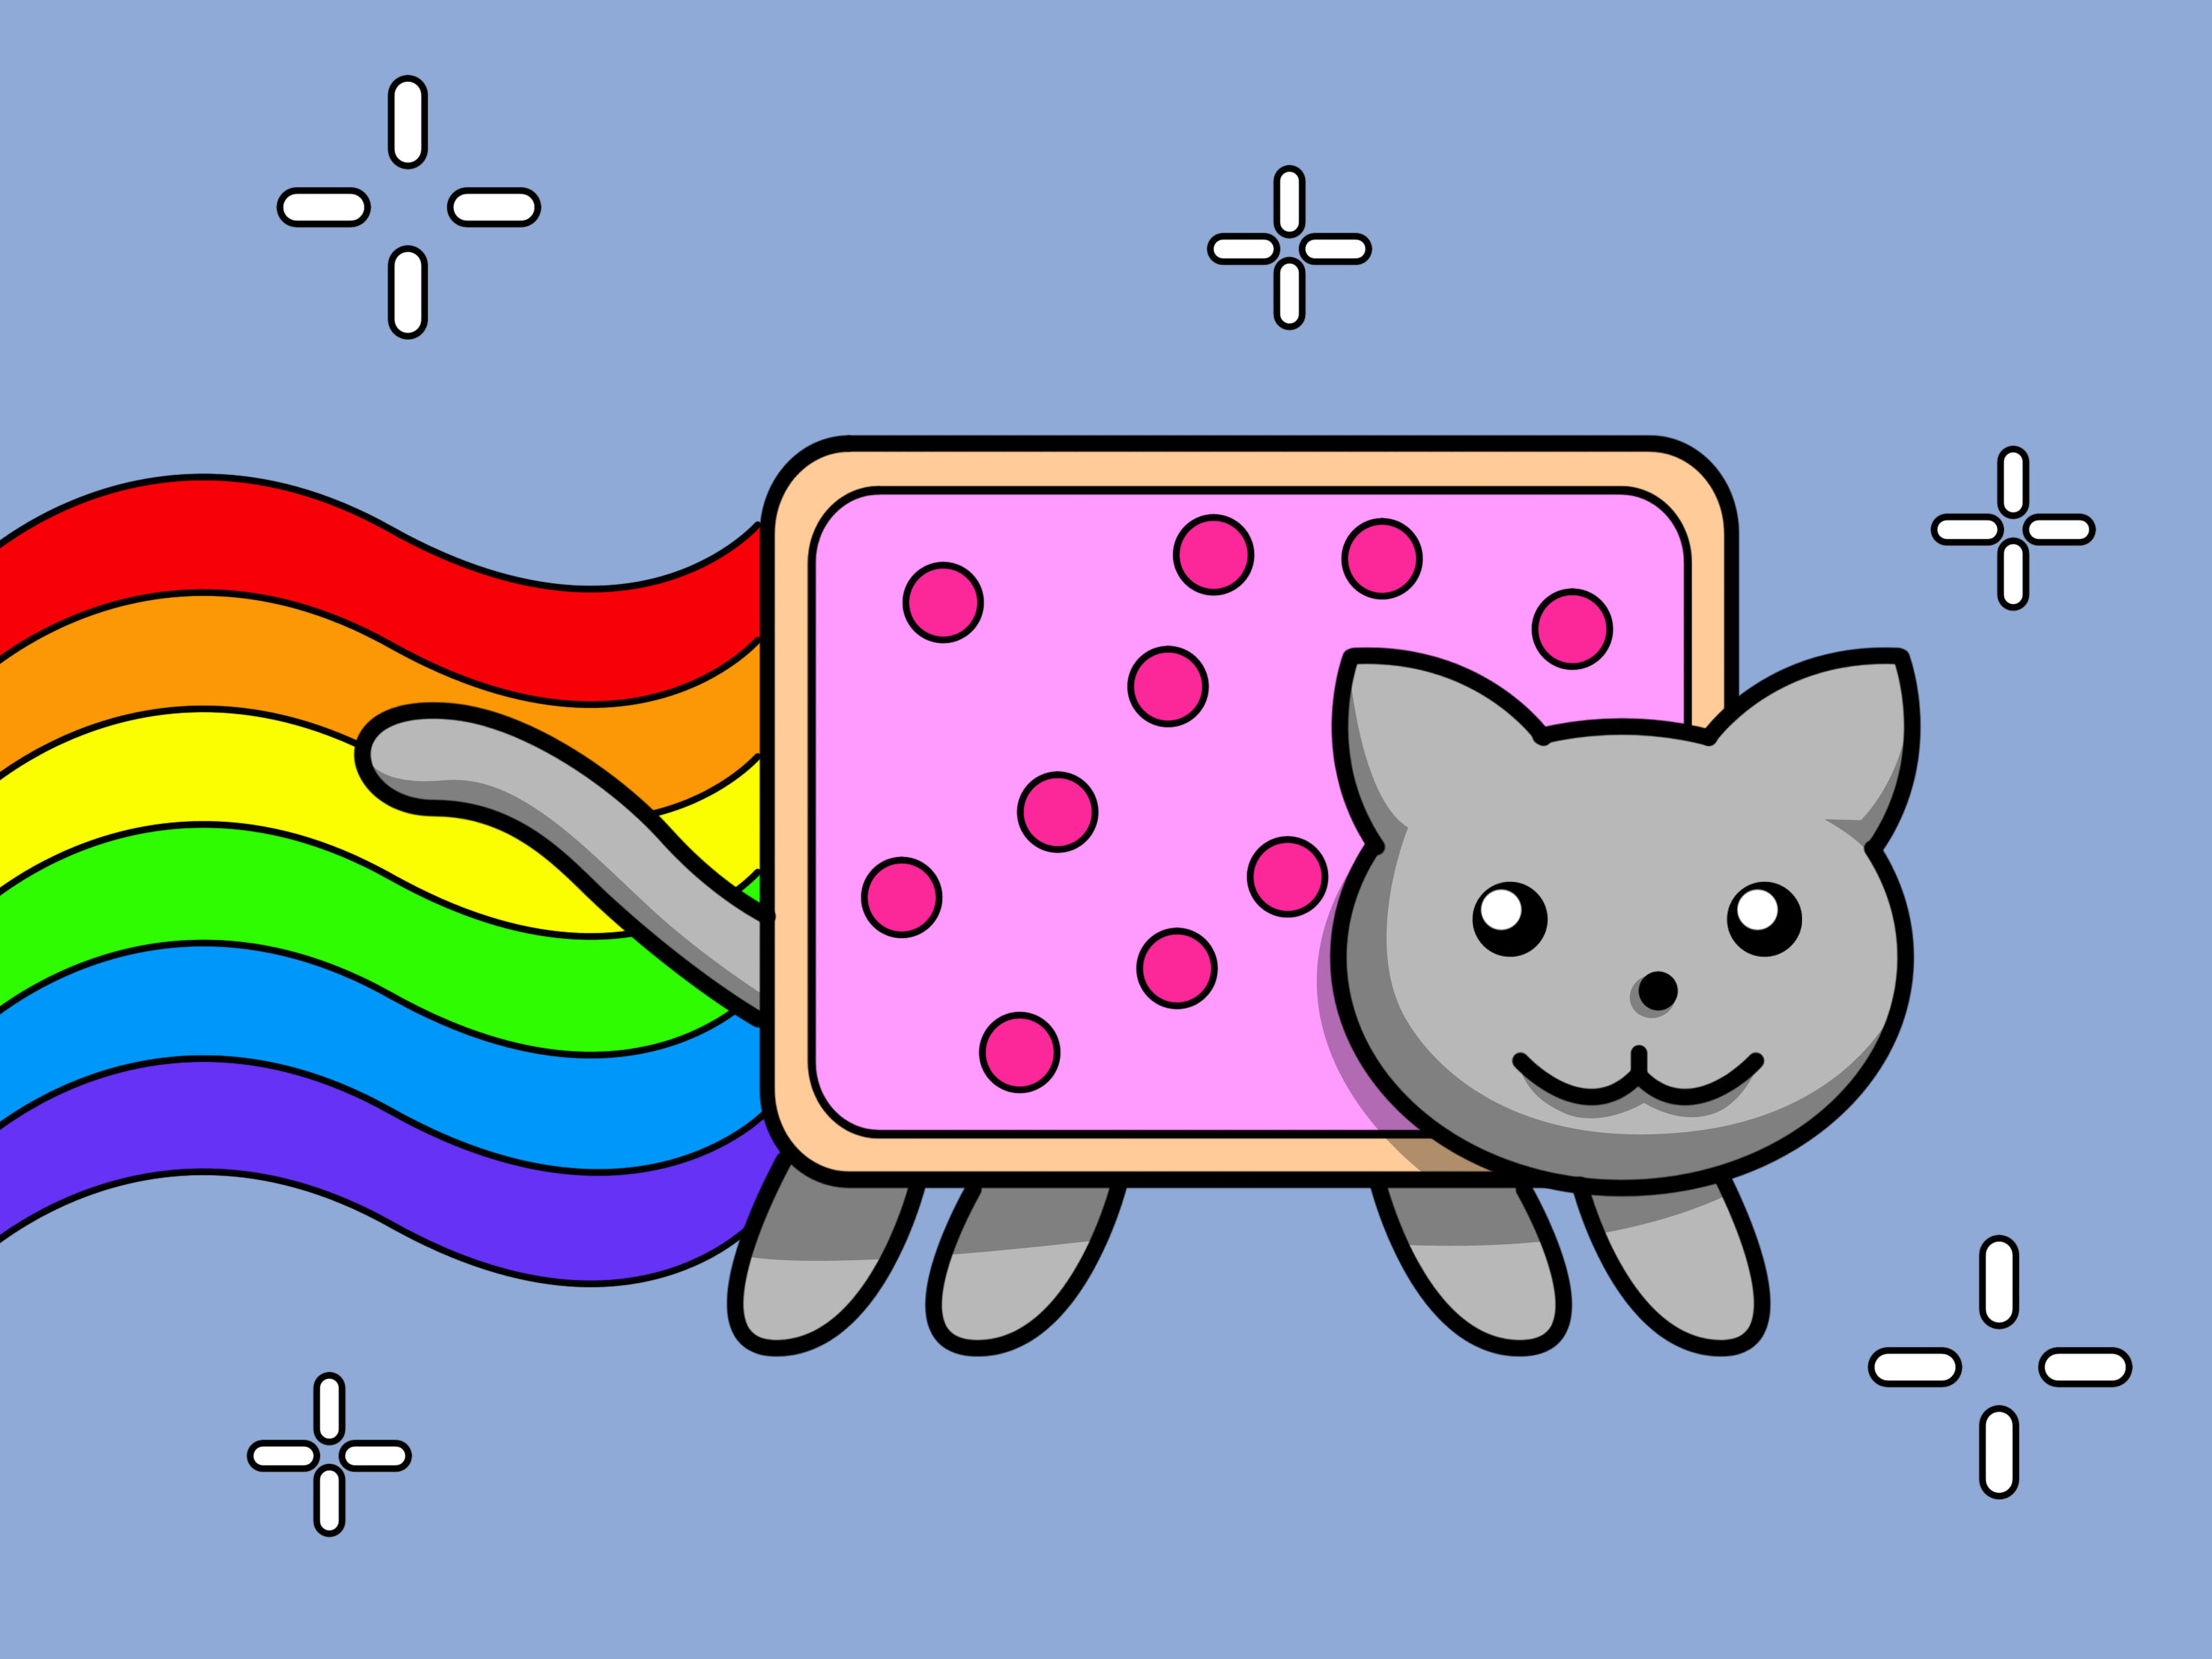 Drawn cute cat Draw Pictures) Steps How to